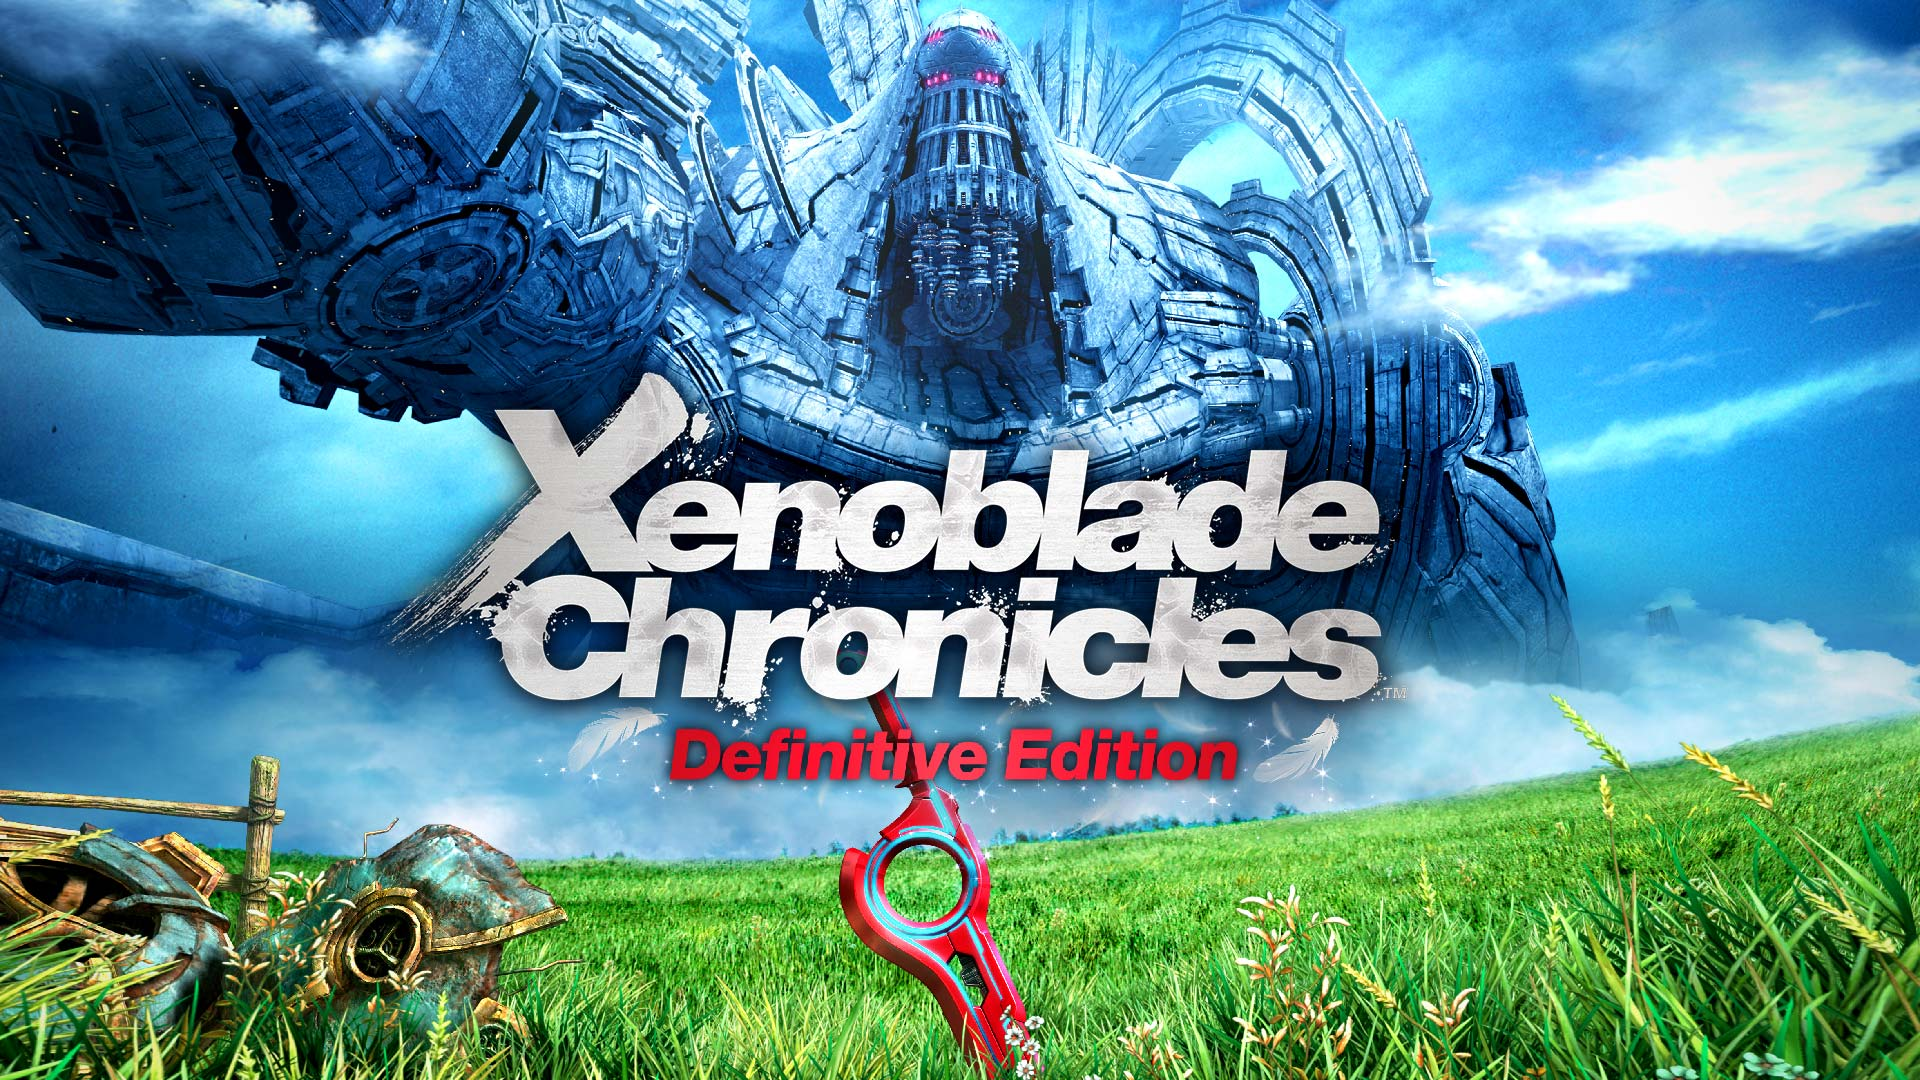 xenoblade chronicles, future connected